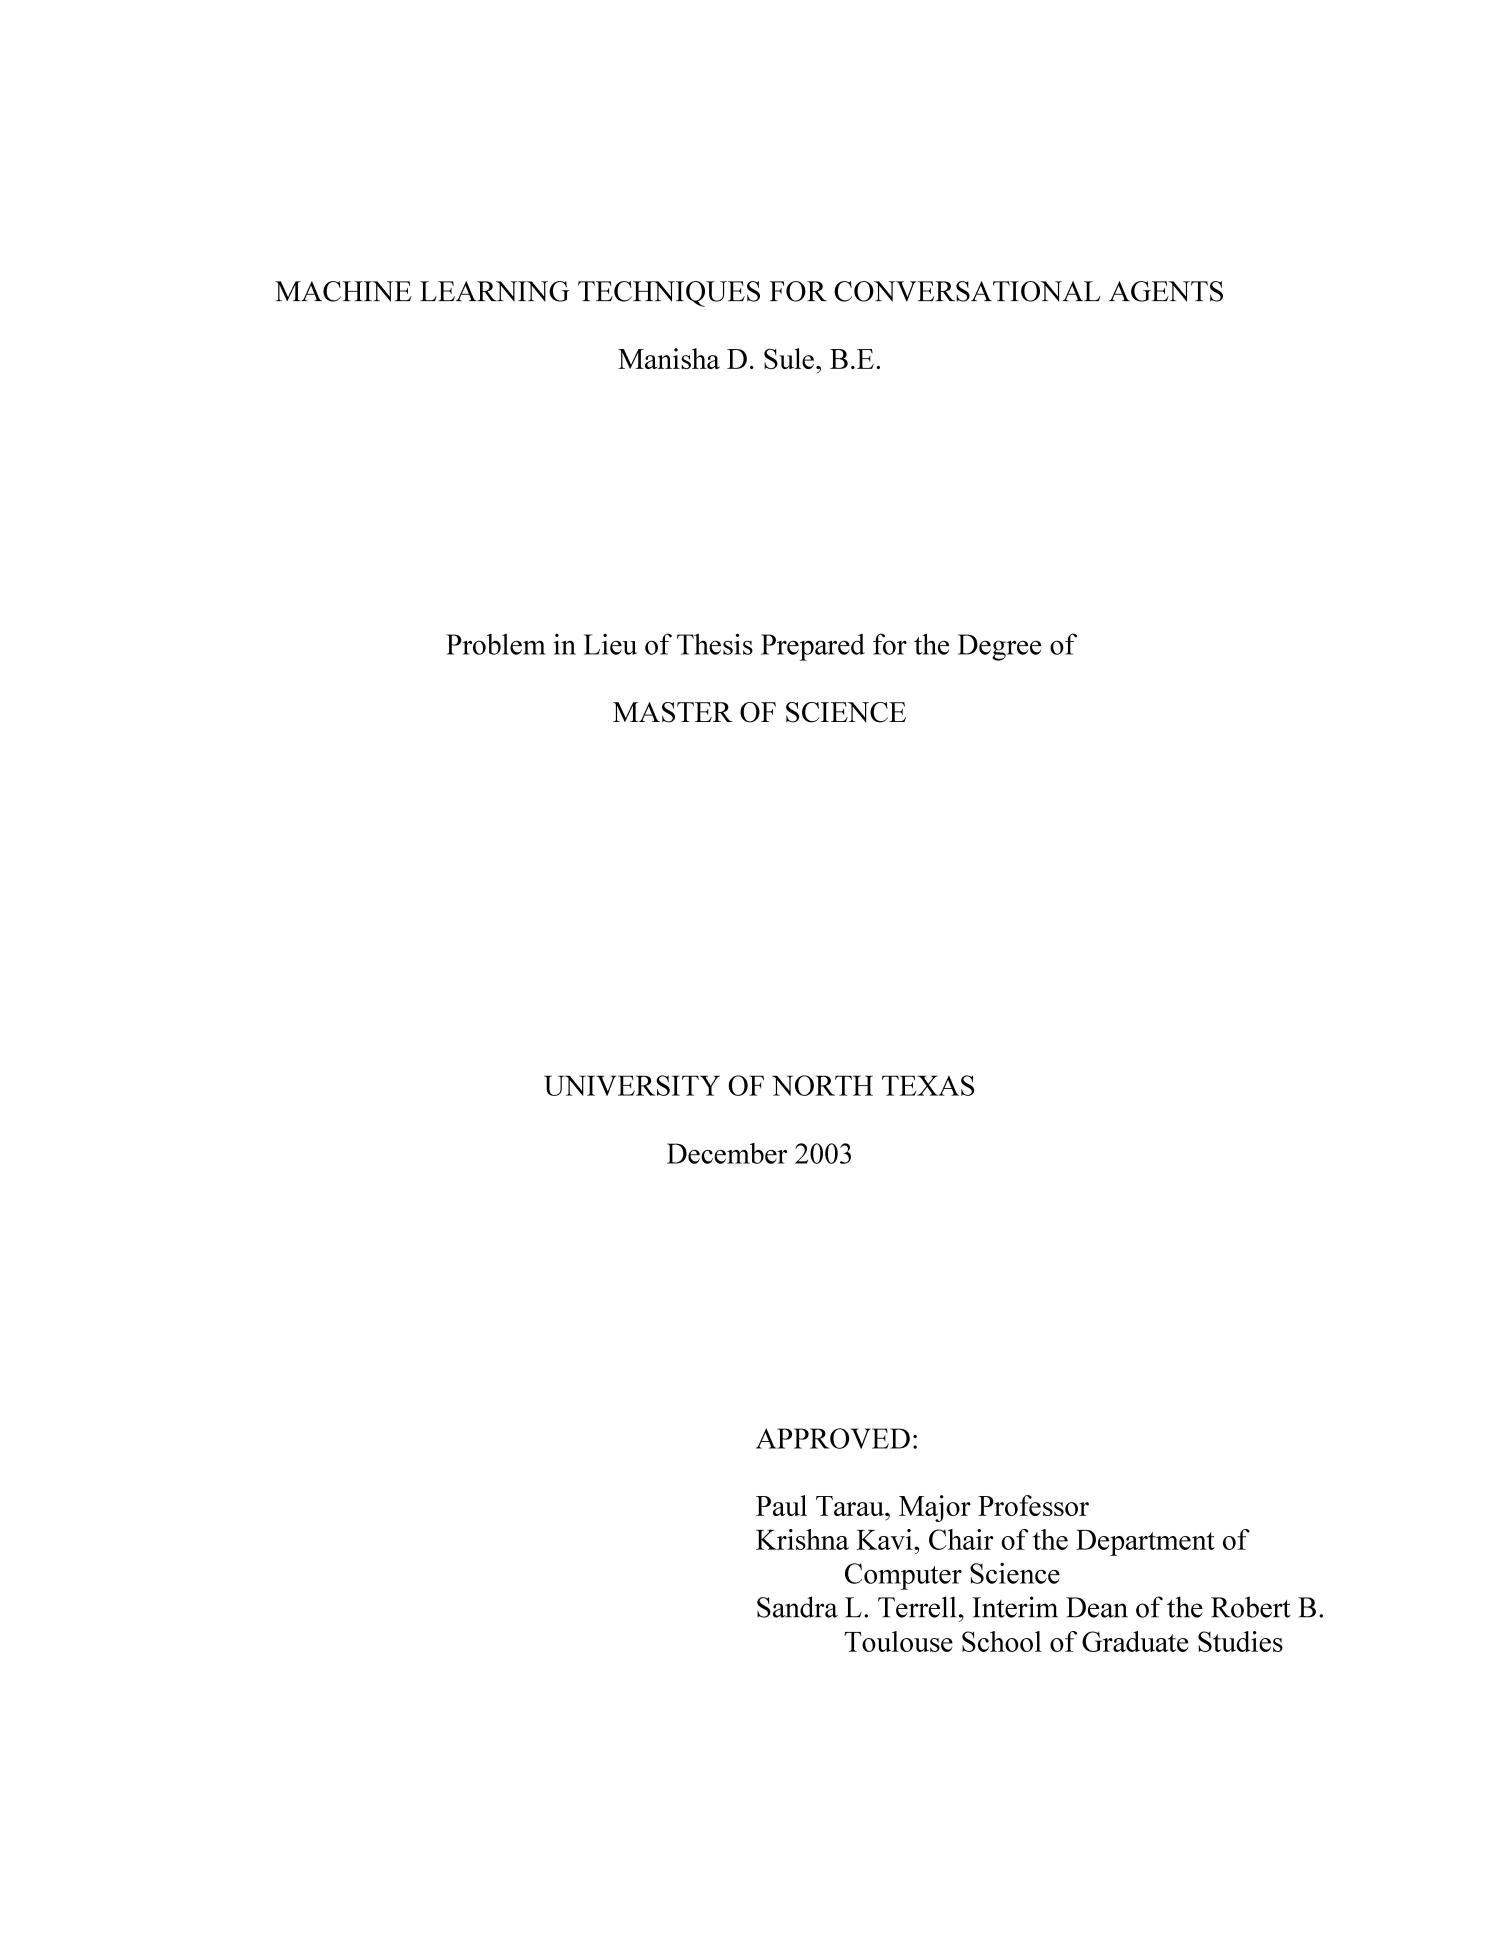 thesis about machine Download thesis statement on the time machine in our database or order an original thesis paper that will be written by one of our staff writers and delivered.